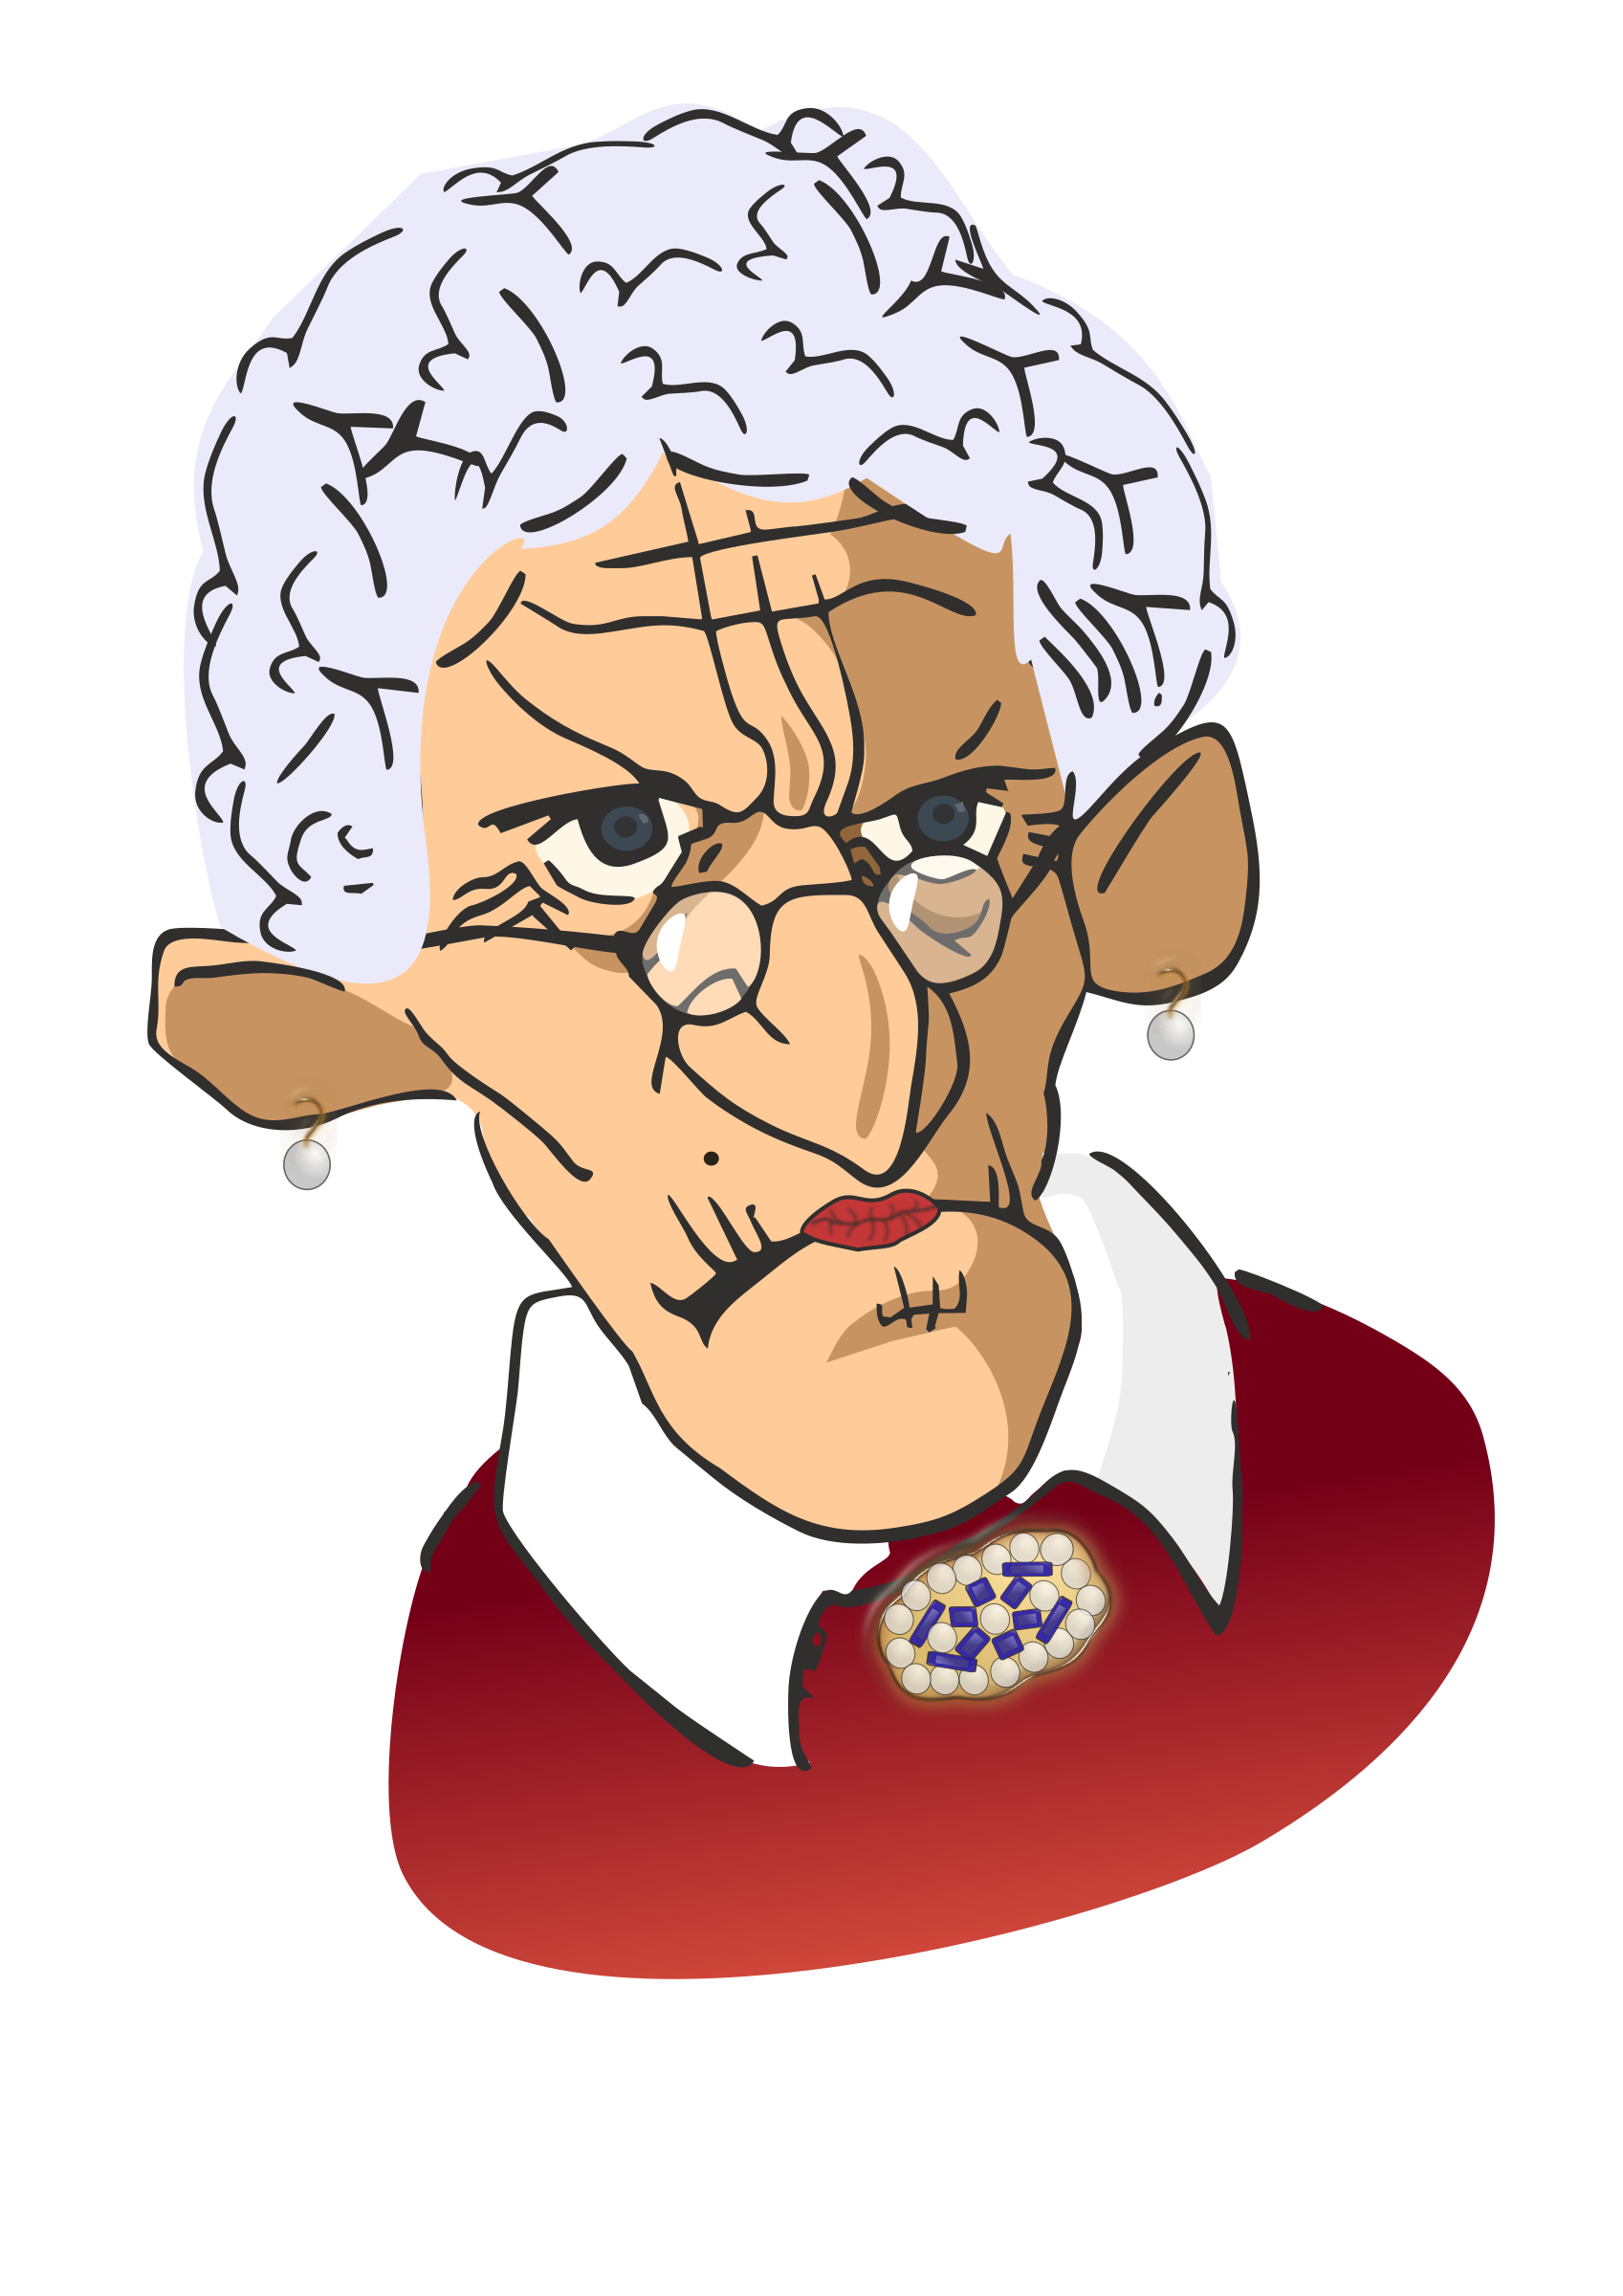 Old free on dumielauxepices. Skin clipart wrinkle